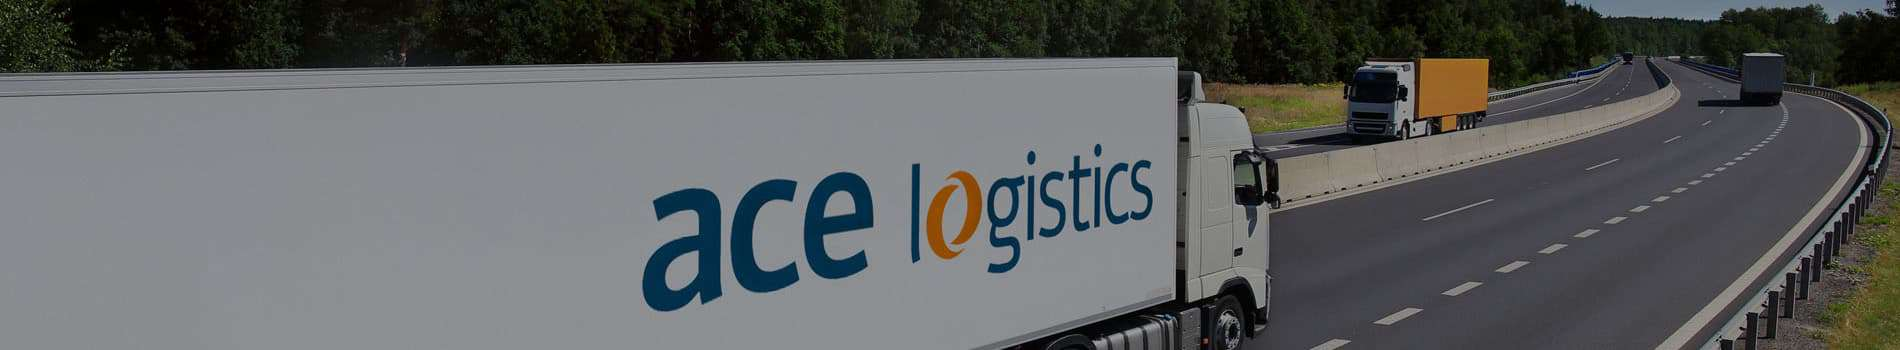 Header image for ACE road transport. Truck with ACE logo on a road.